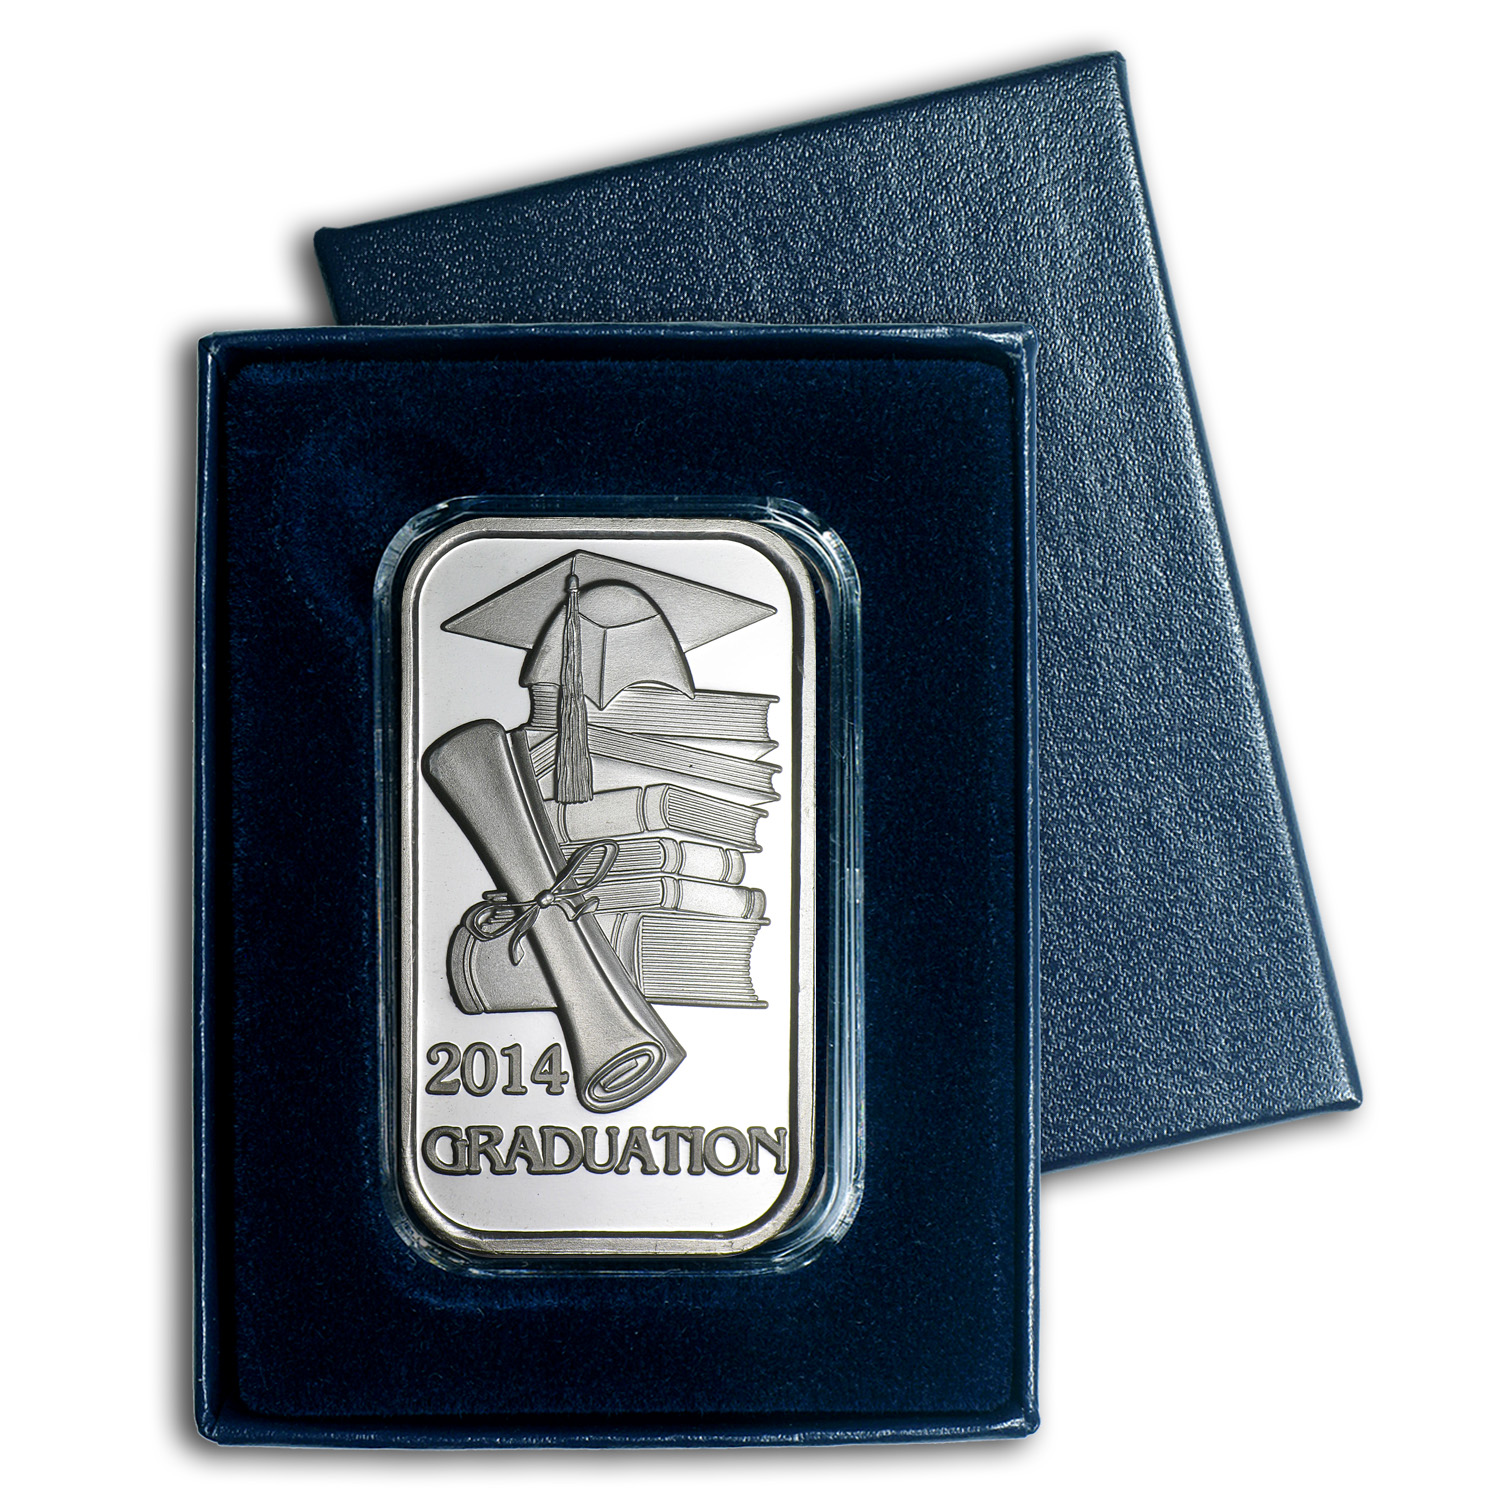 1 oz Silver Bars - 2014 Graduation (w/Gift Box & Capsule)